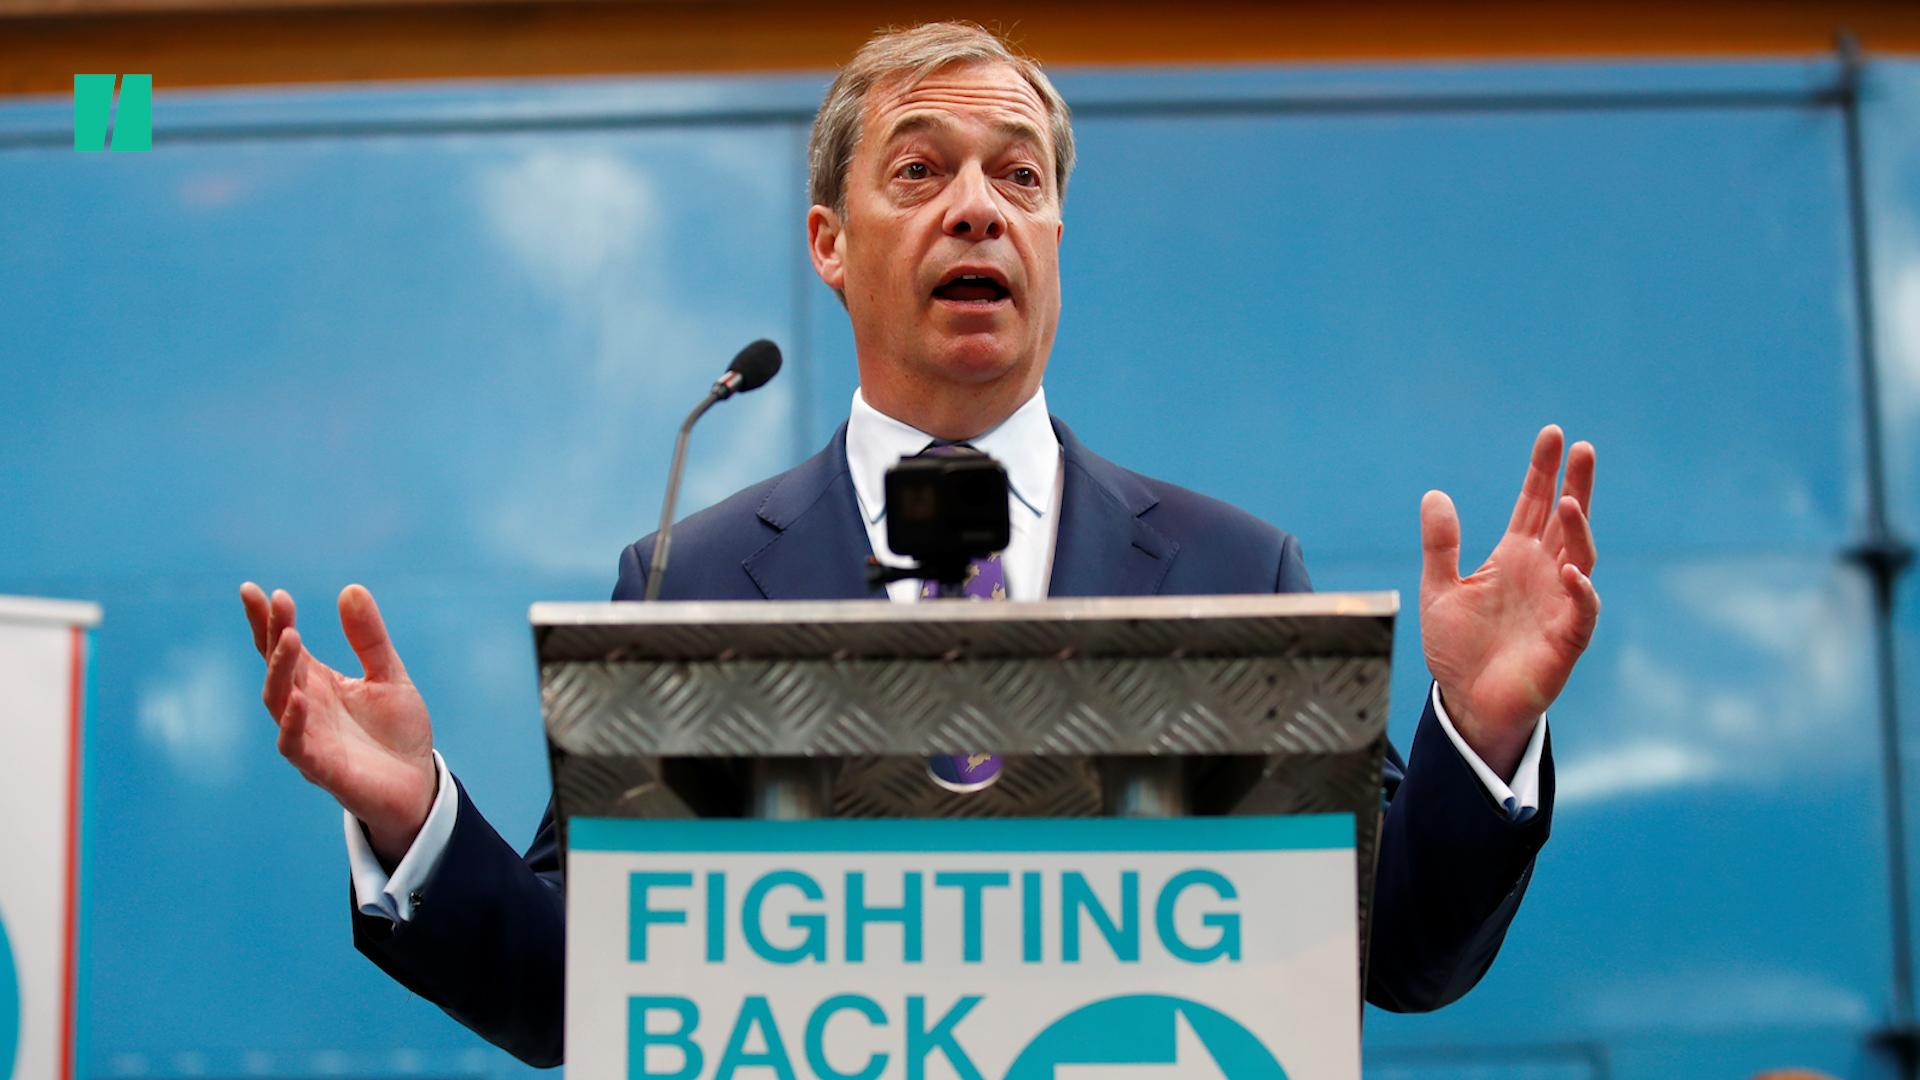 Nigel Farage's Brexit Party Leading In Latest European Election Poll